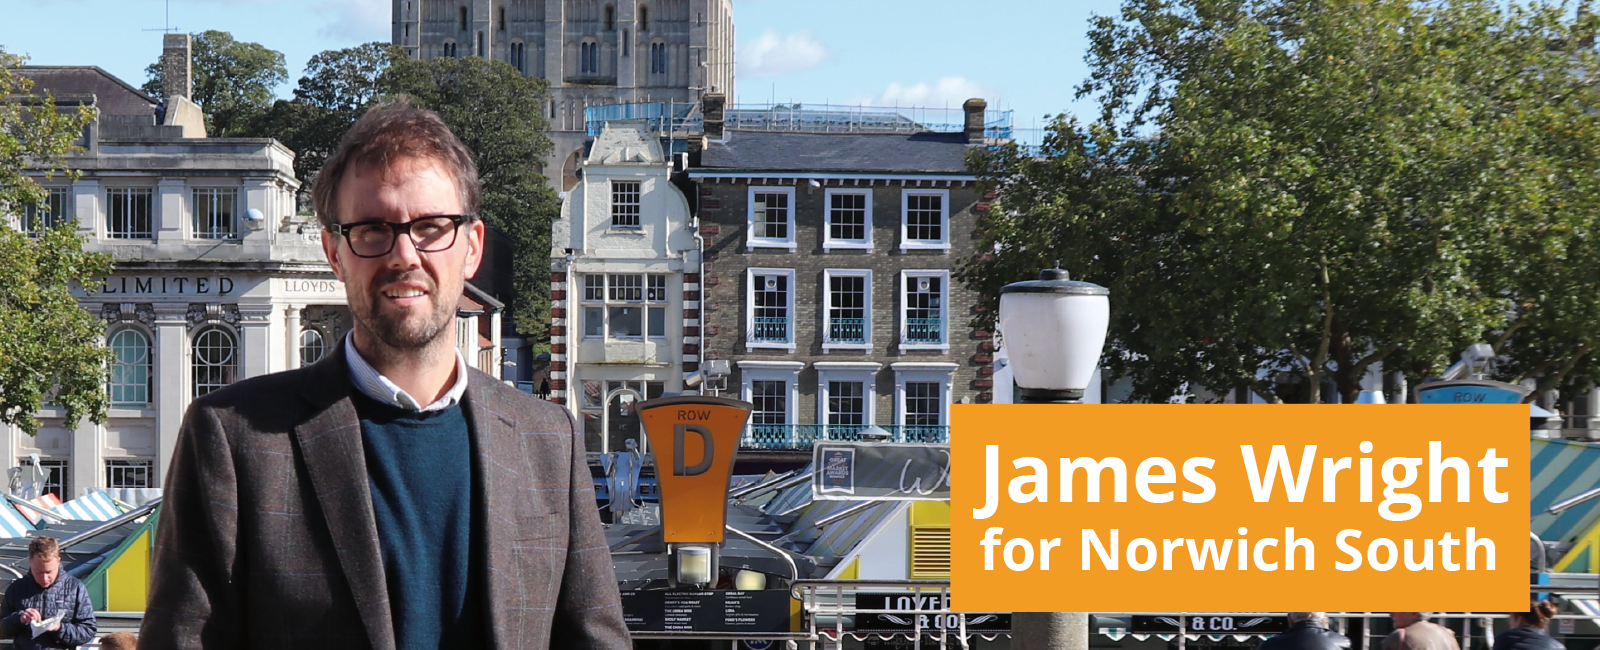 James Wright for Norwich South